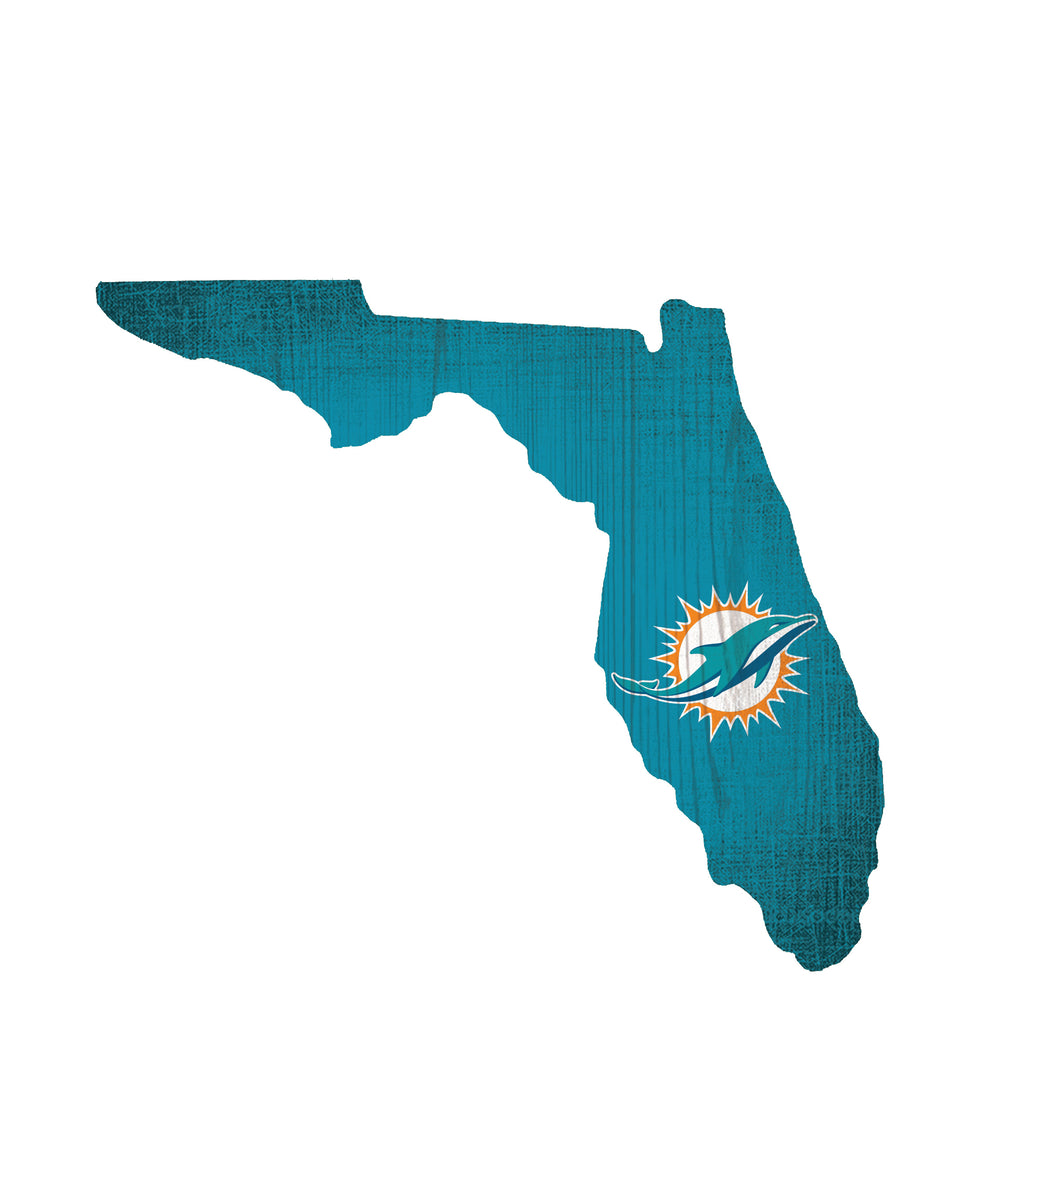 Miami Dolphins State Wood Sign